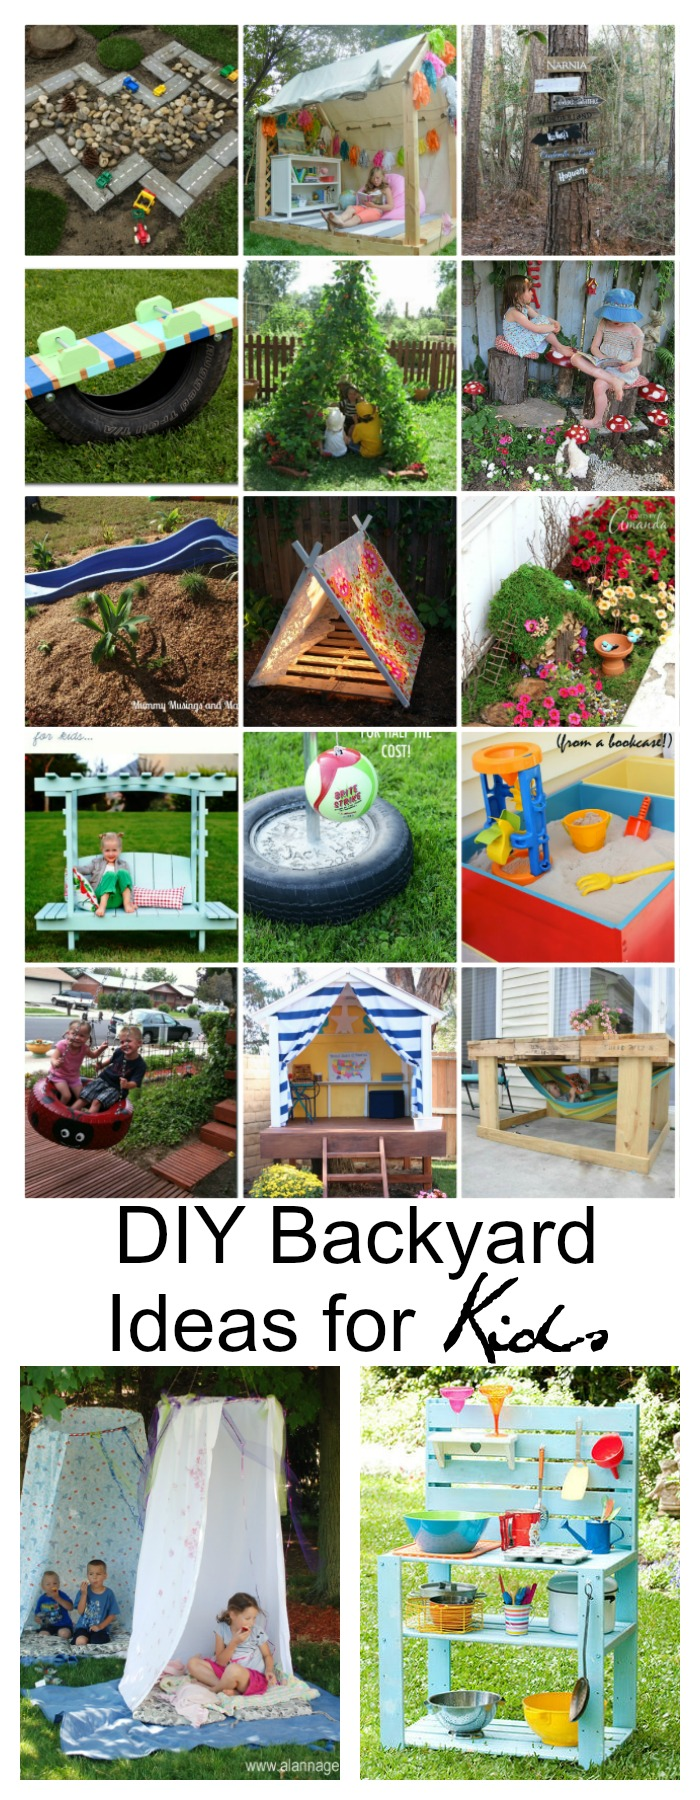 DIY-Backyard-Ideas-for-Kids-Pin